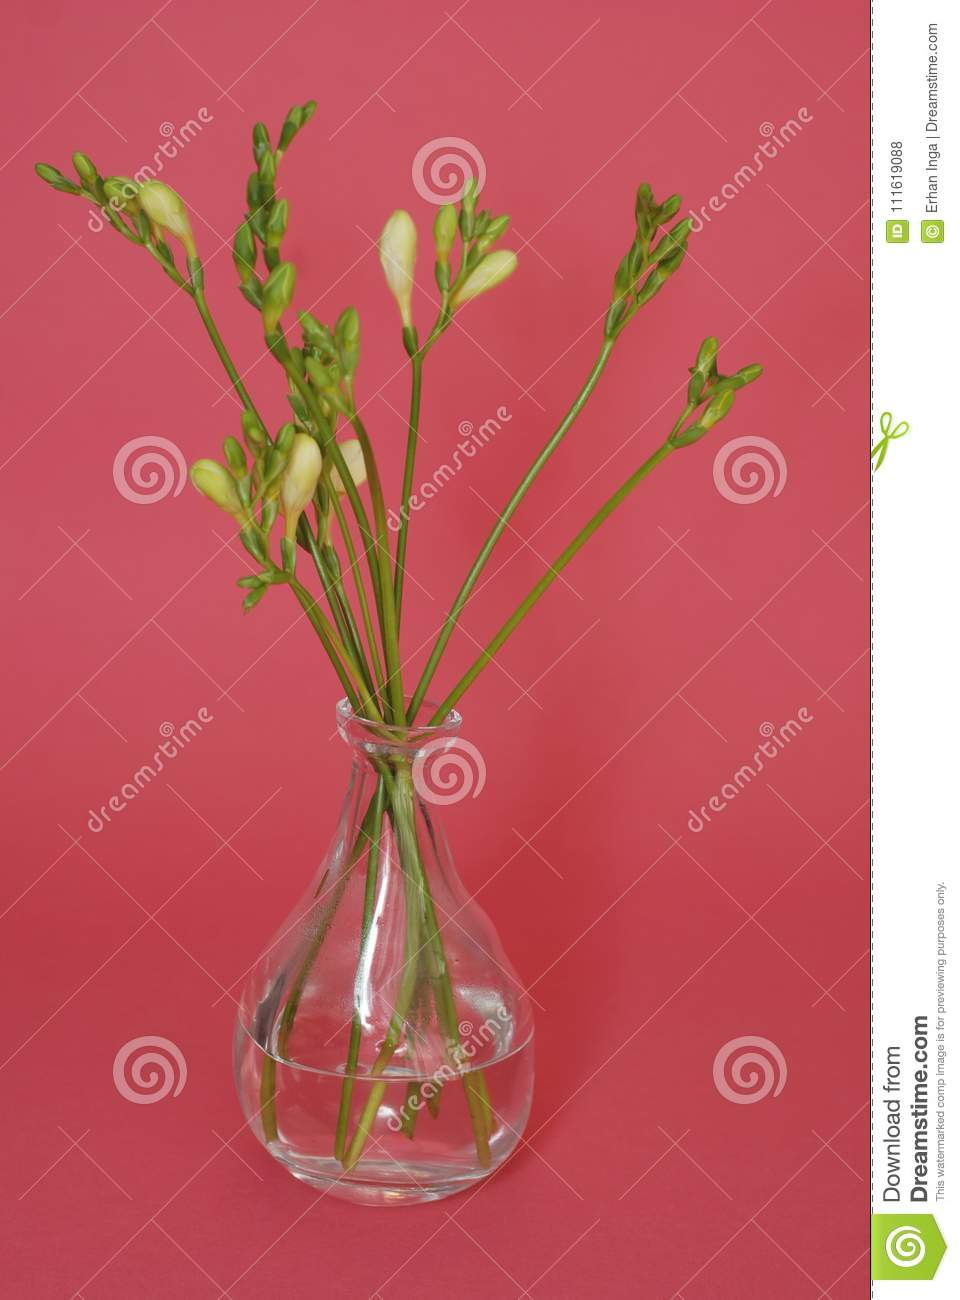 Fresh Freesia Green buds in Glass Vase isolated on Pink Rose background. Spring Background.